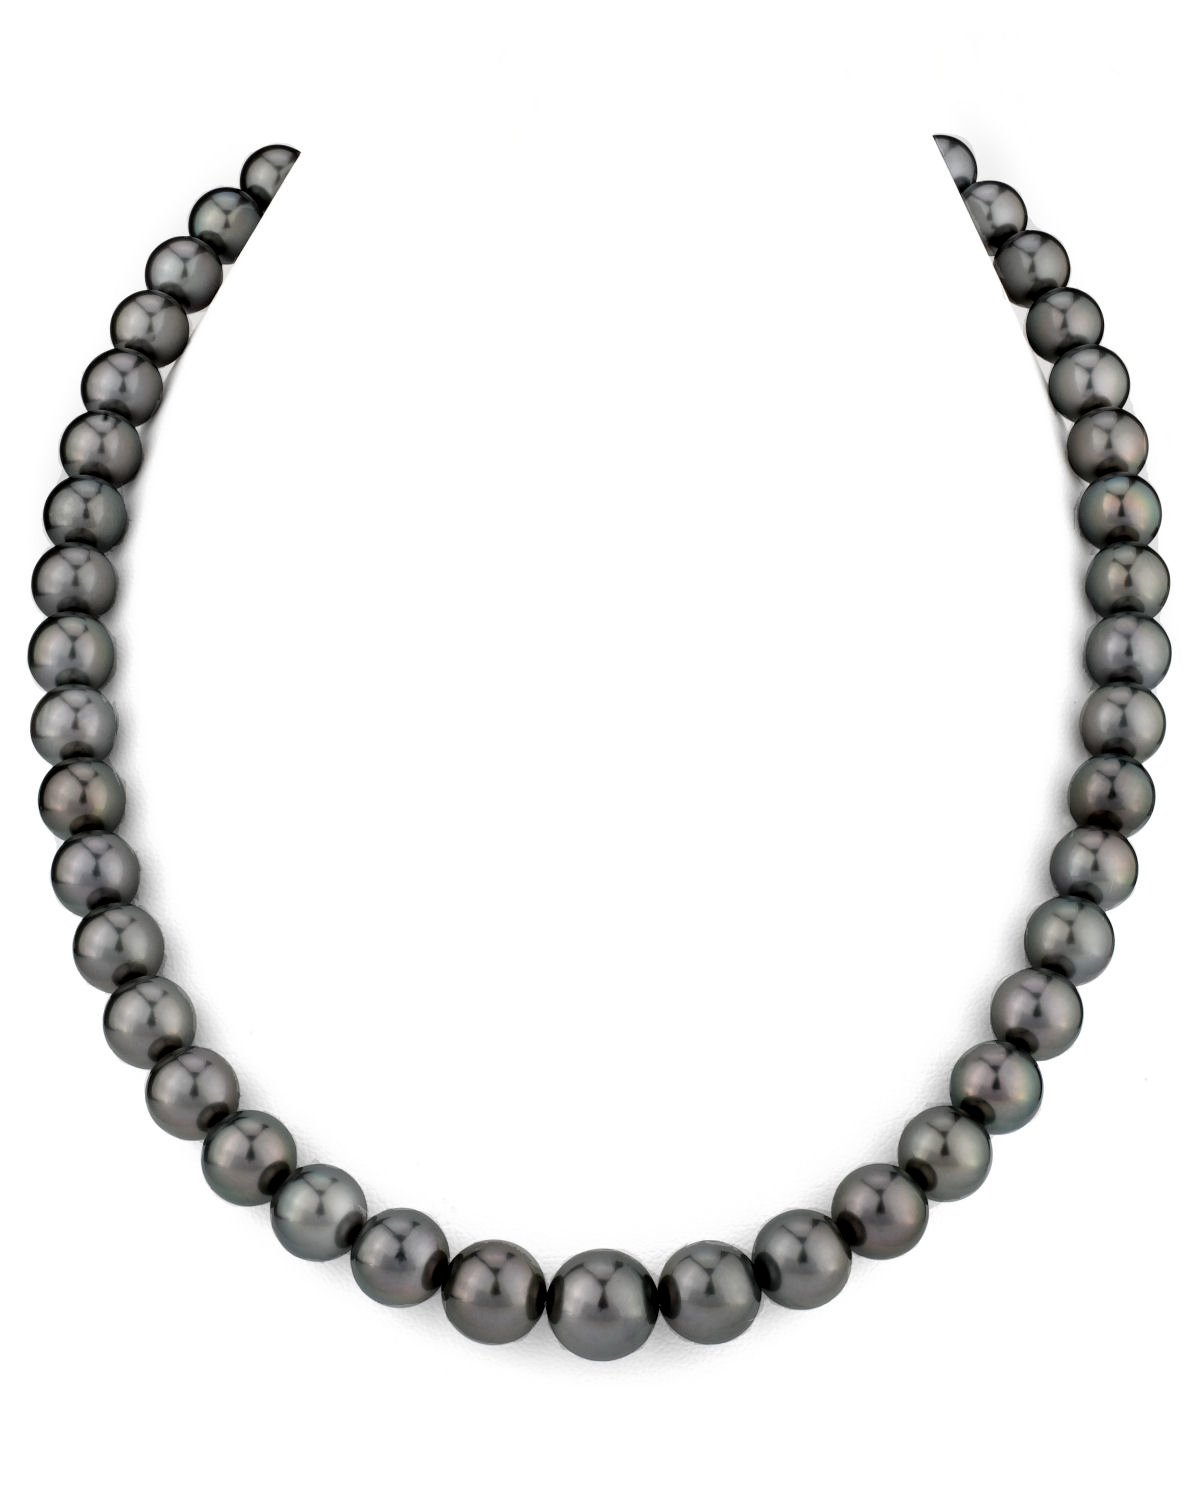 14K Gold 8-10mm Tahitian South Sea Cultured Pearl Necklace - AAA Quality, 16'' Choker Length